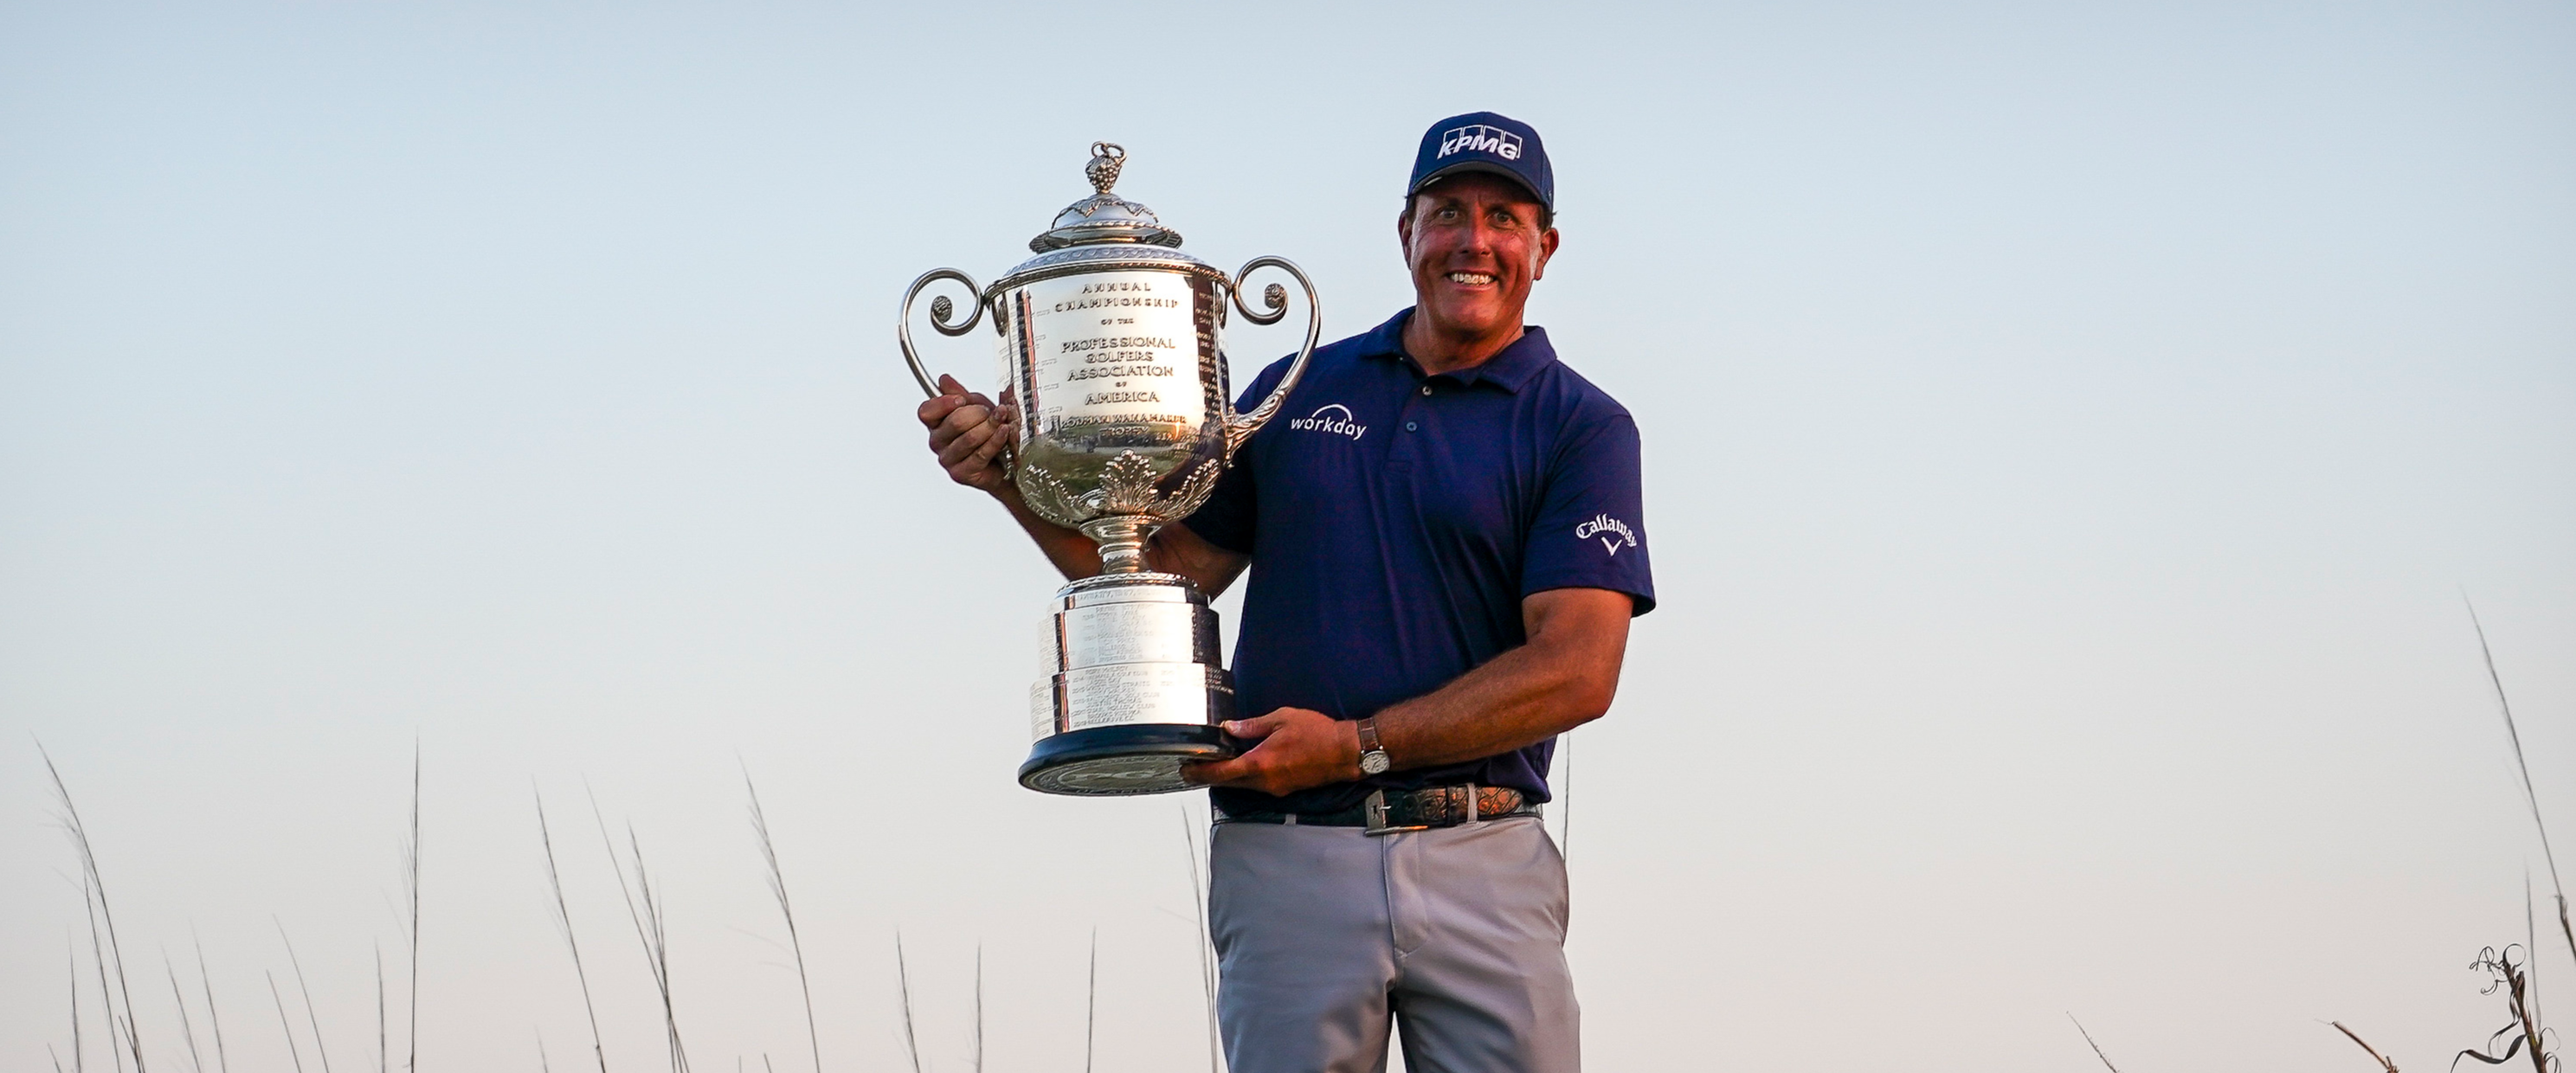 The oldest major champion in PGA Tour history is the lefty, Phil Mickelson